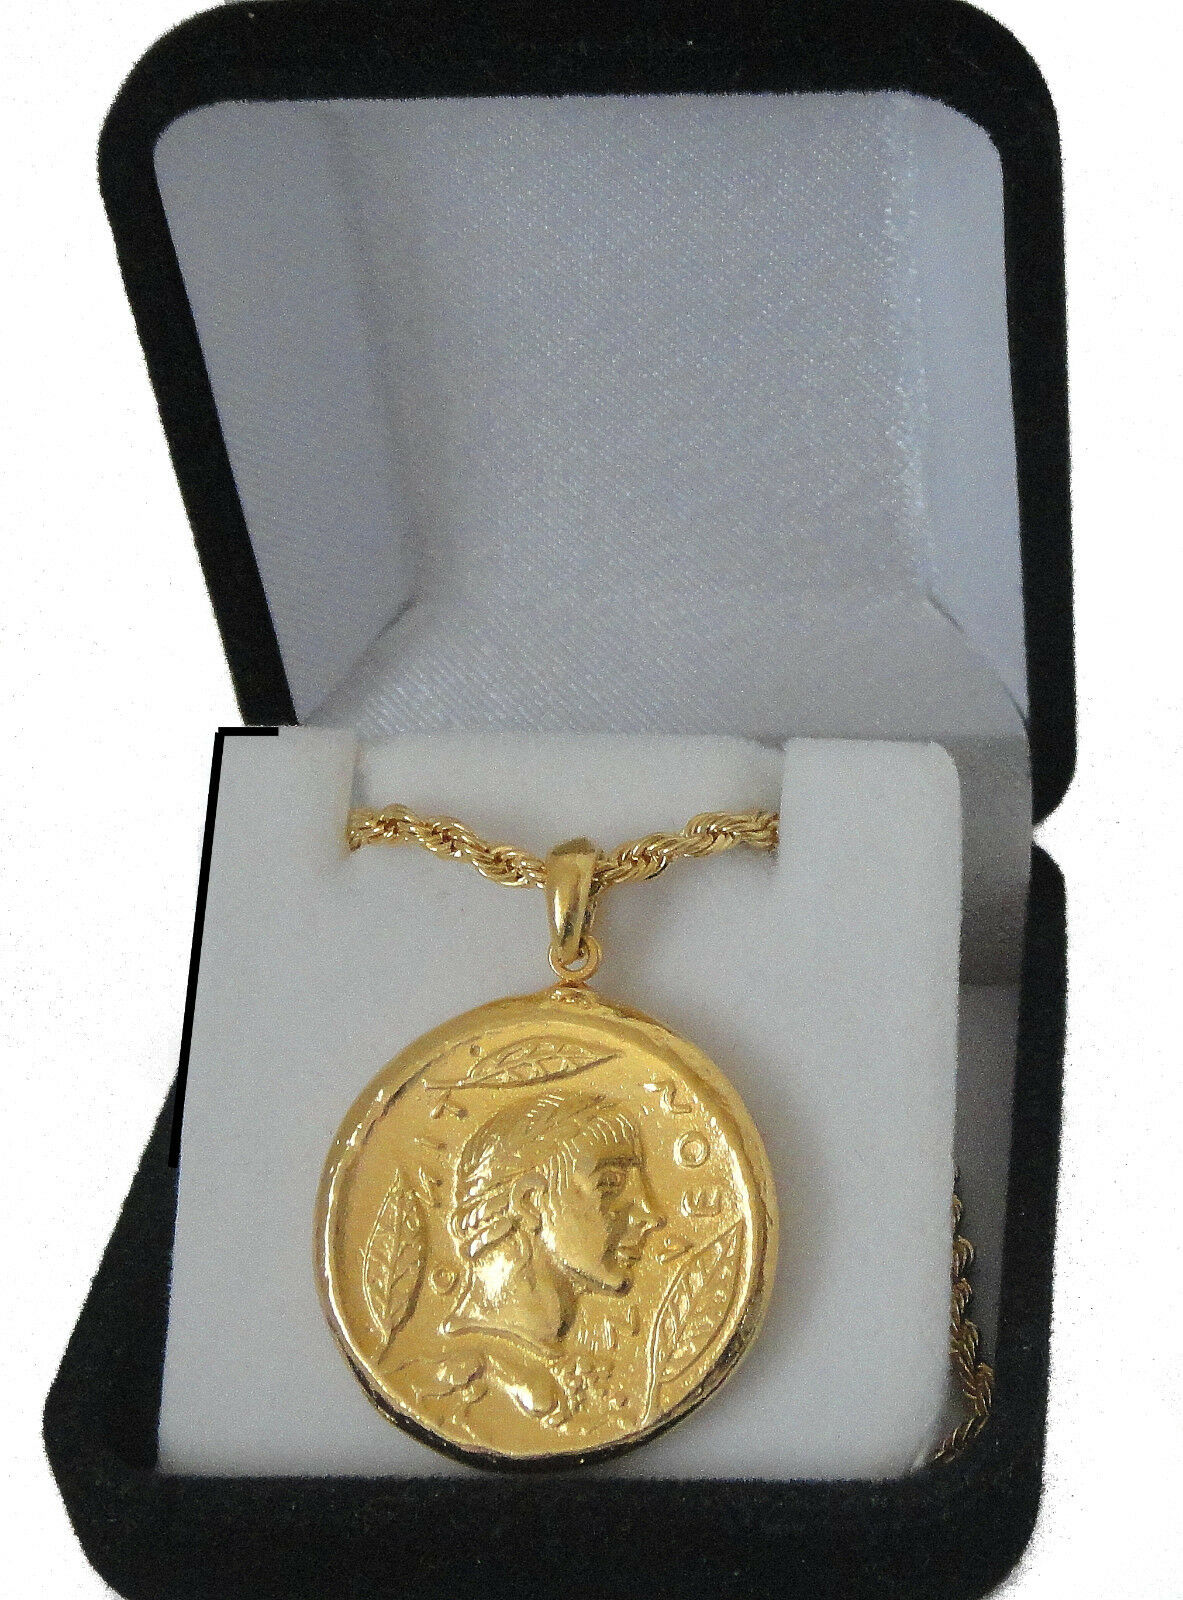 Percy Jackson Necklace,APOLLO & Charioteer,God of the Sun,Pendant and Chain,27-G